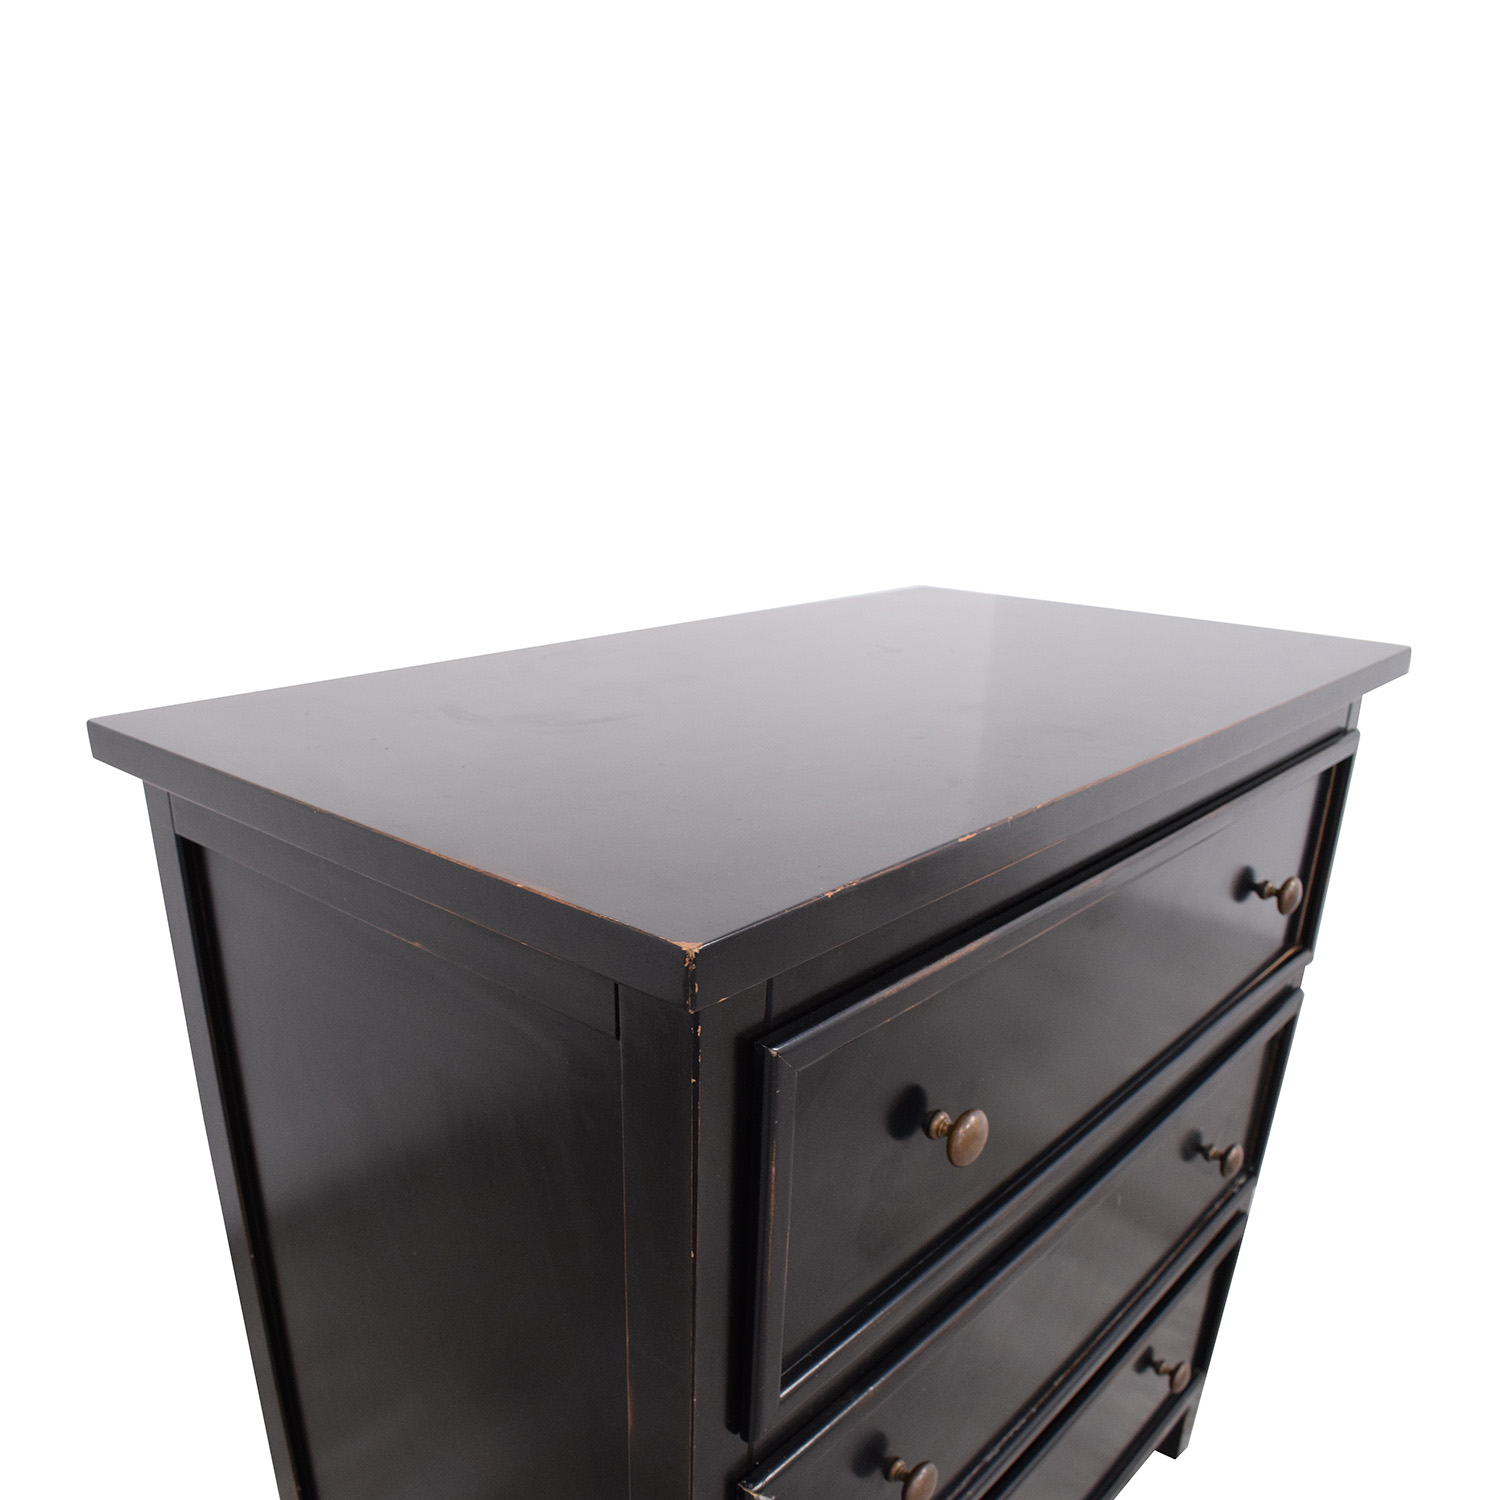 Crate & Barrel Crate & Barrel Three Drawer Nightstand coupon